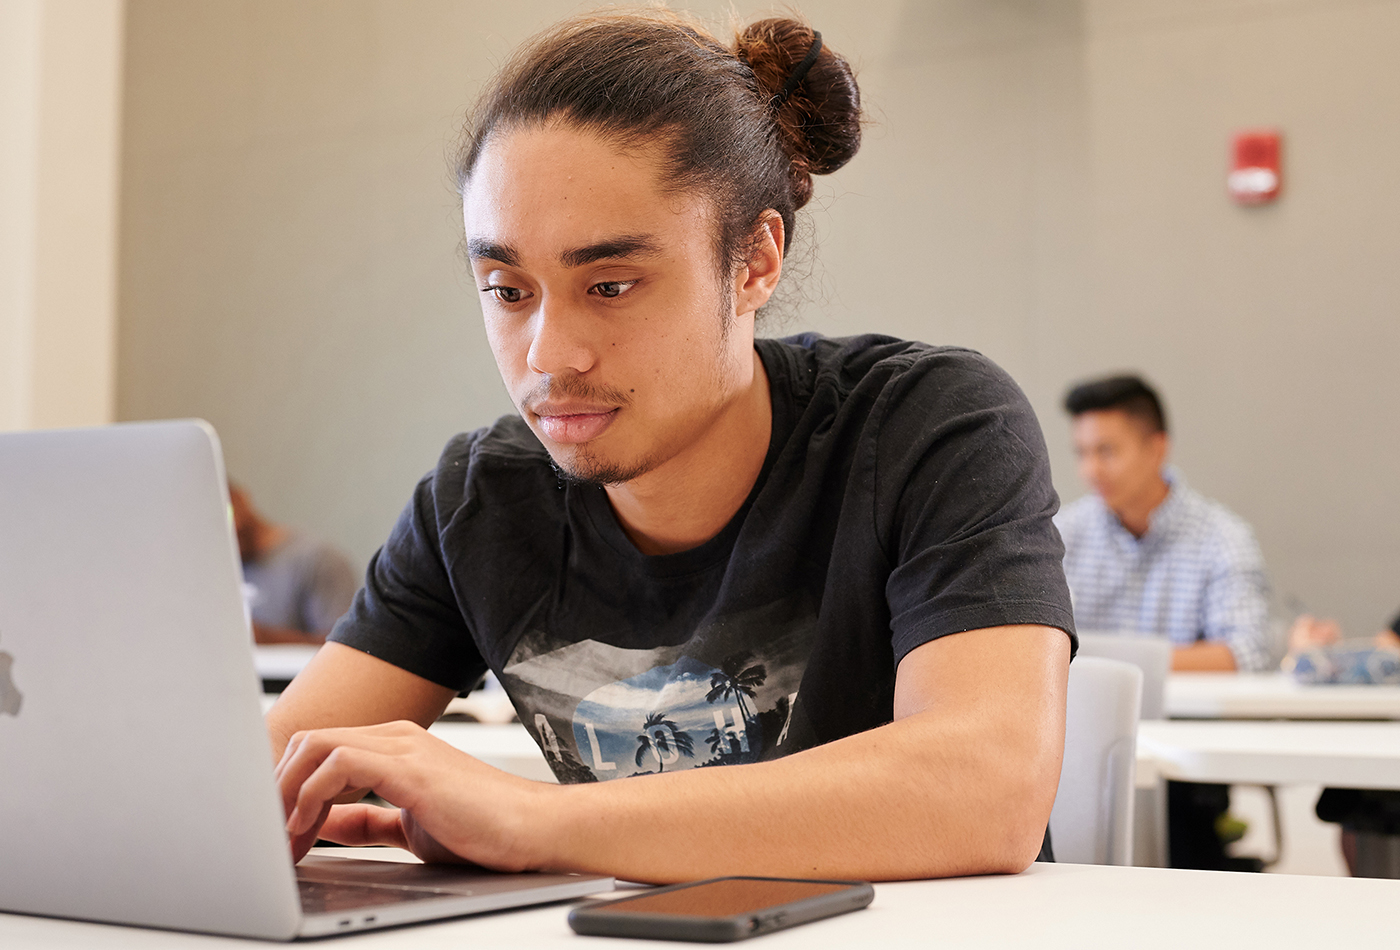 A student studying on a laptop in class.